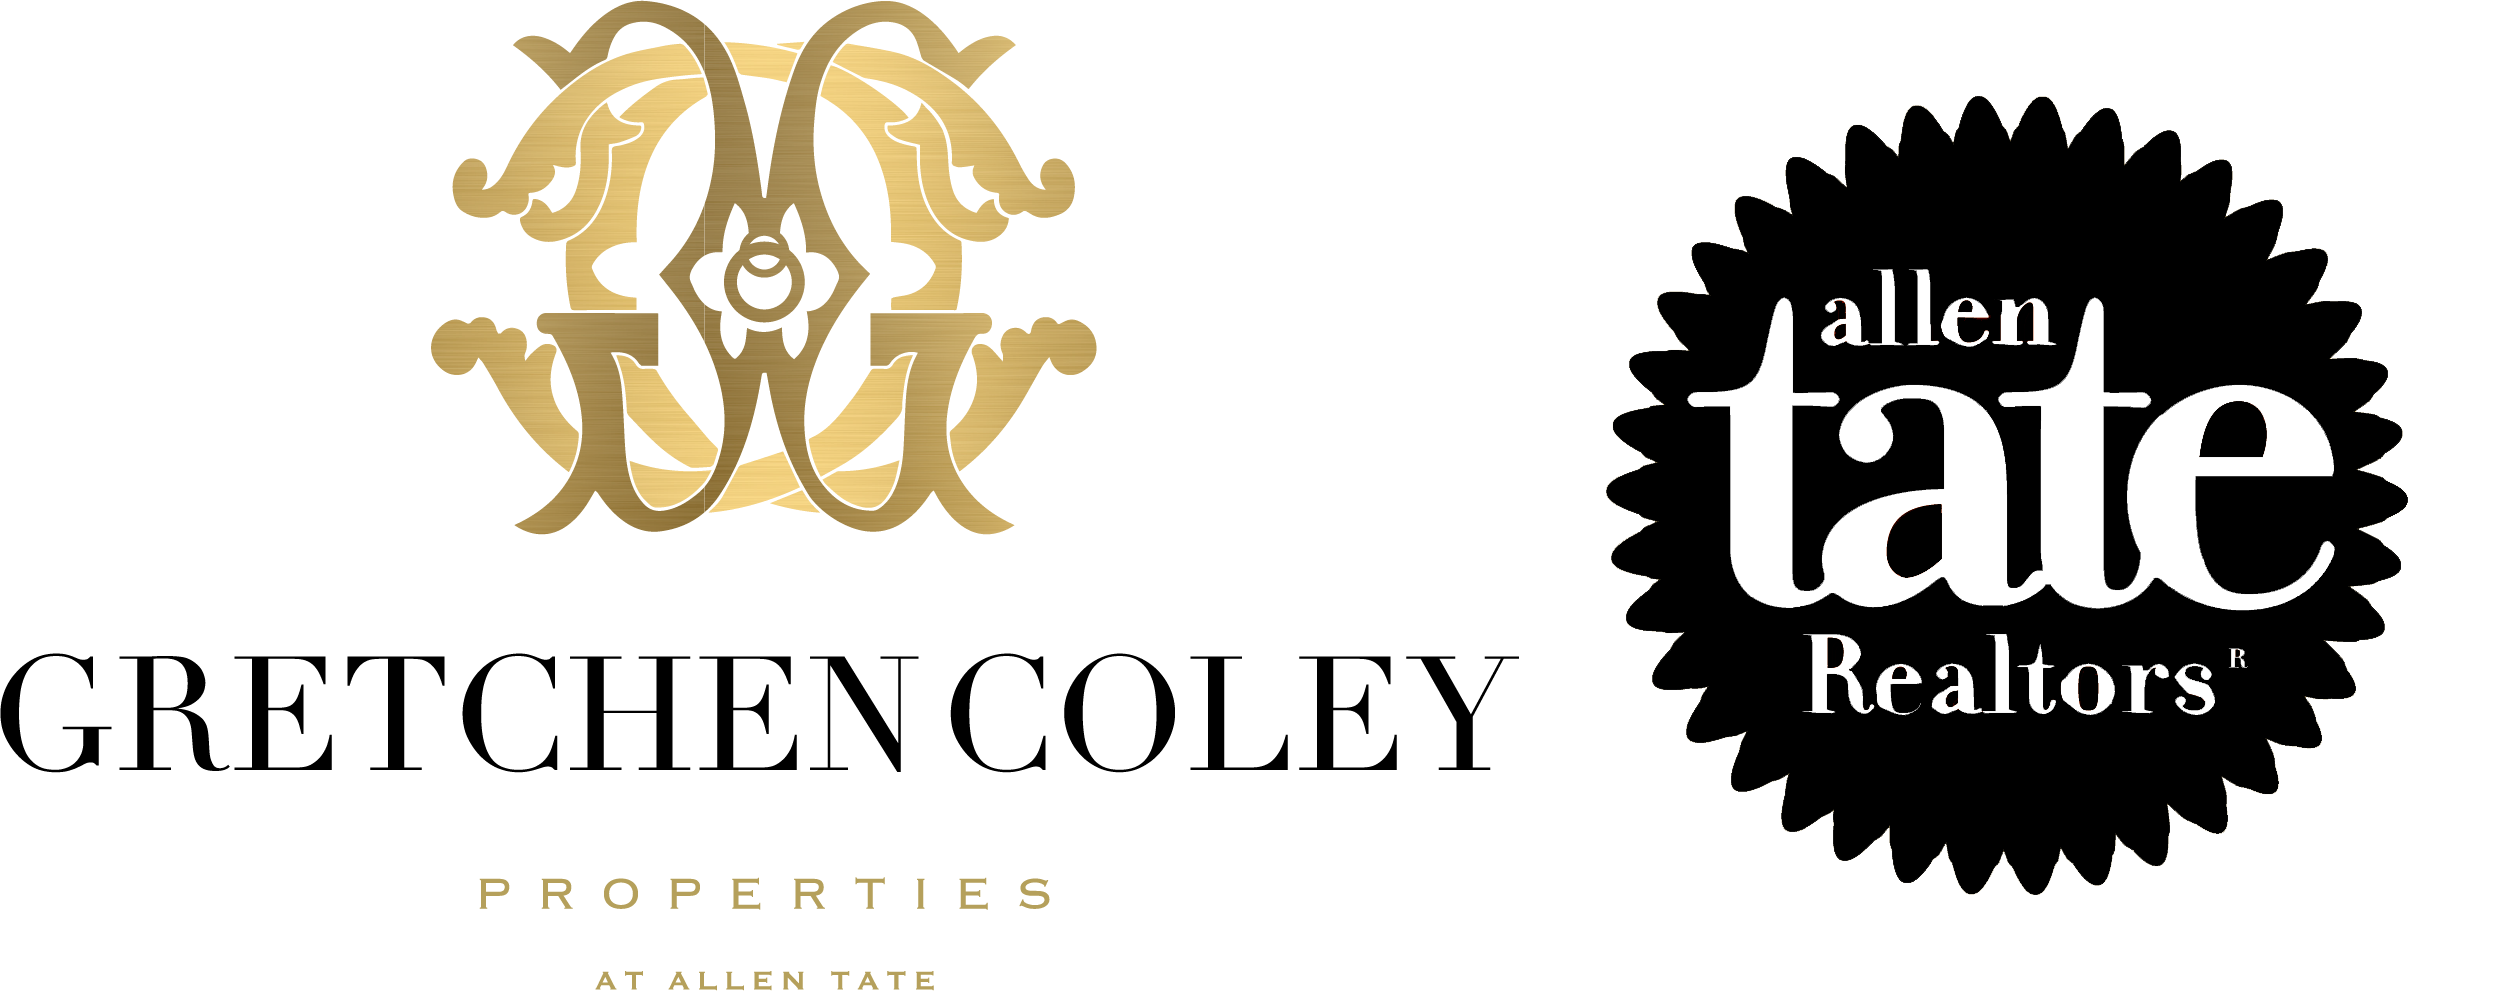 The Coley Group